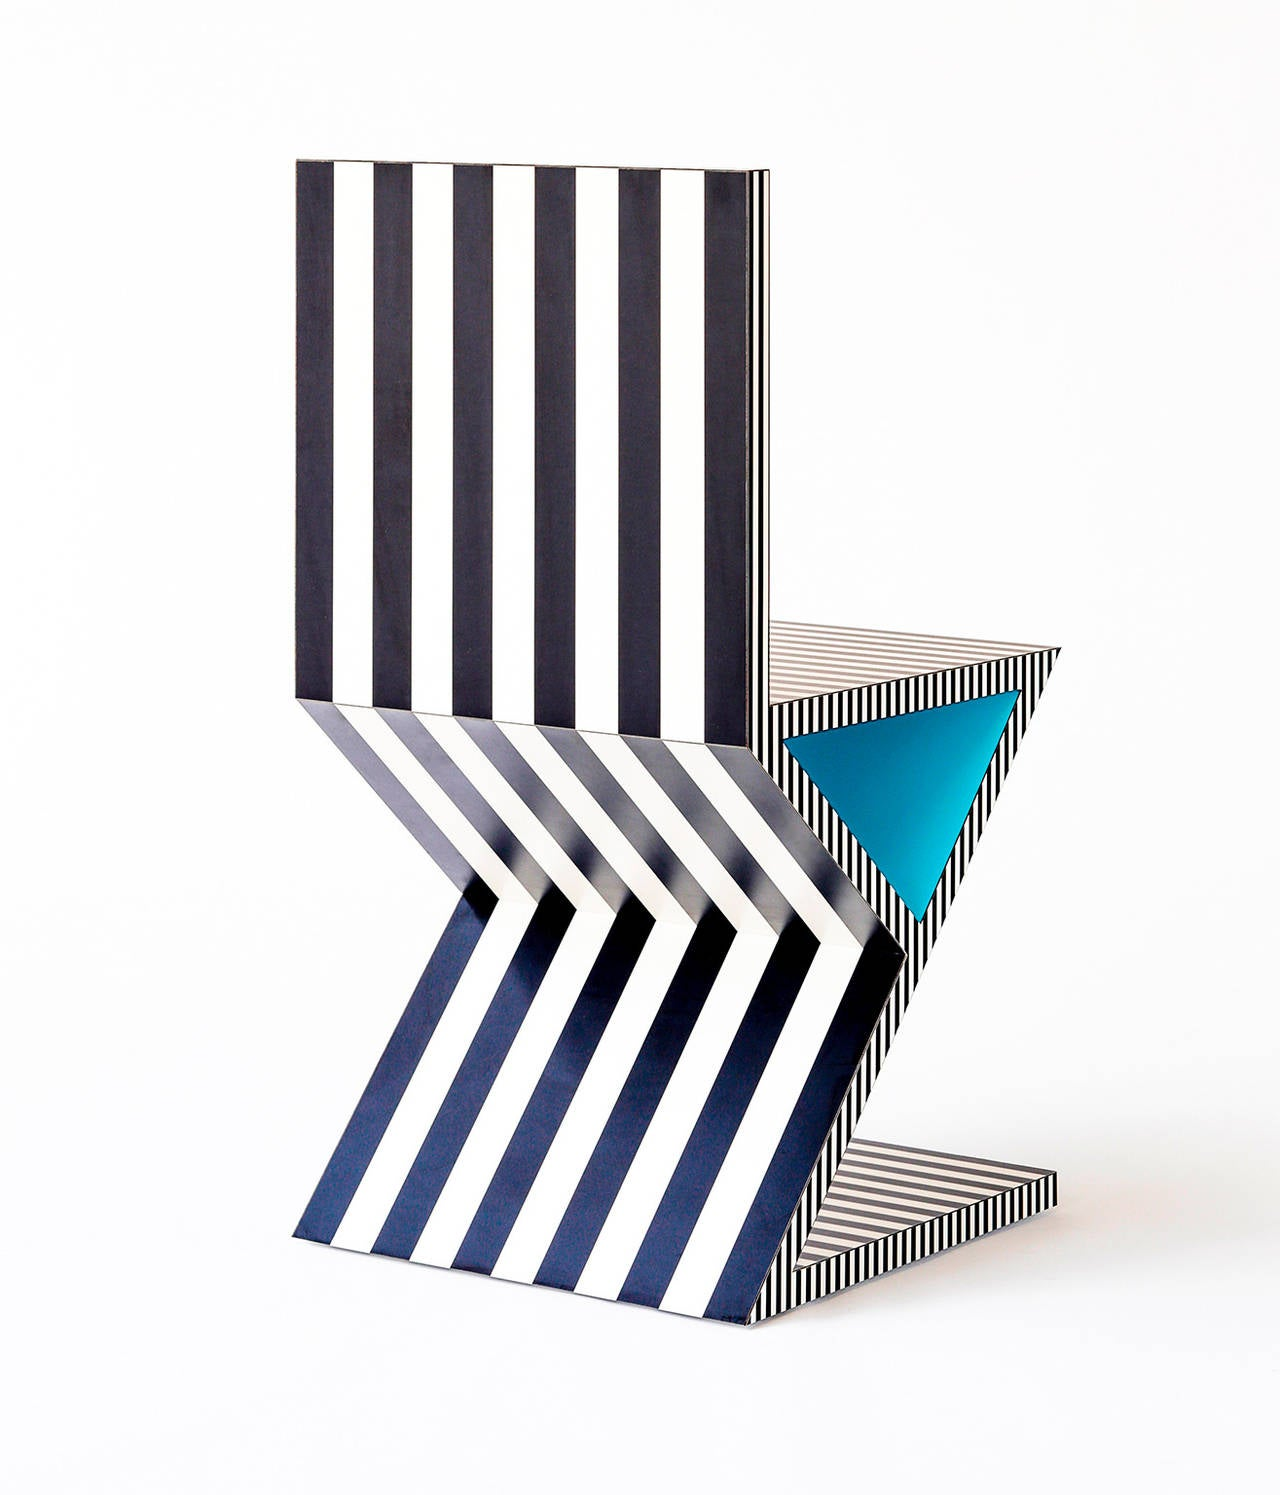 American Memphis Inspired Chair, Neo Laminati Collection For Sale